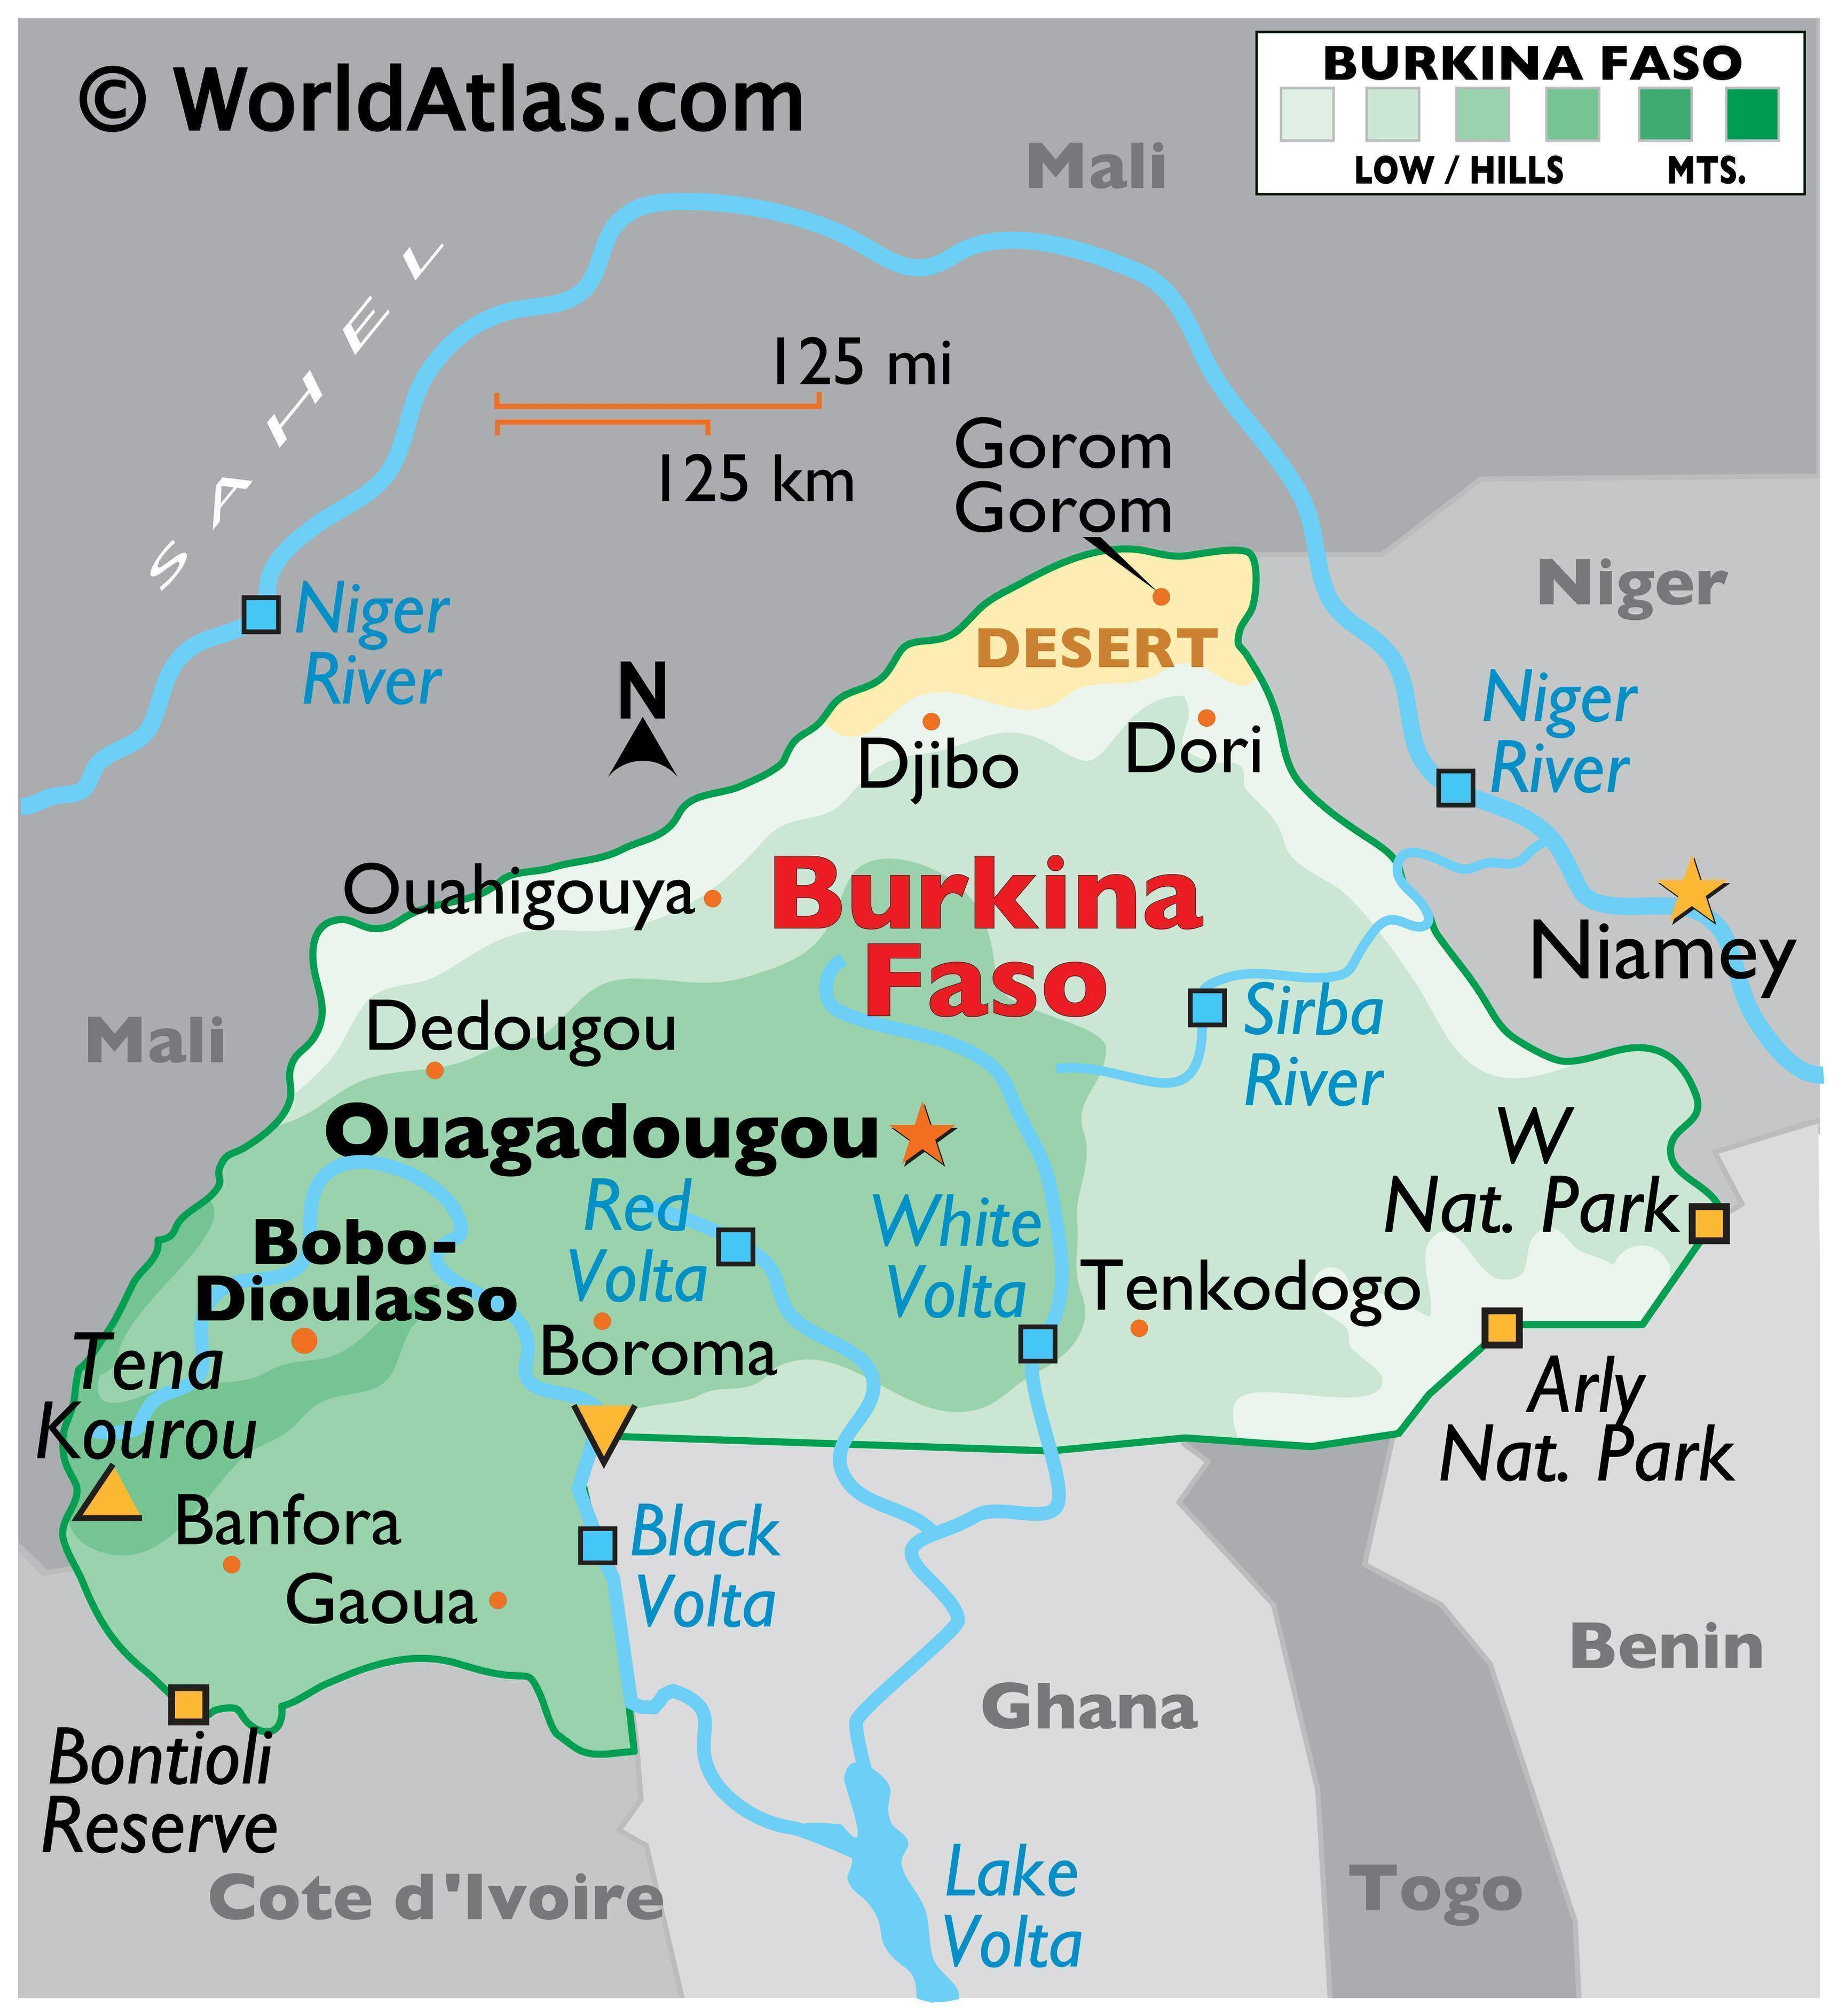 Physical map of Burkina Faso showing its state boundaries, relief, major rivers, extreme points, national parks, and major cities.